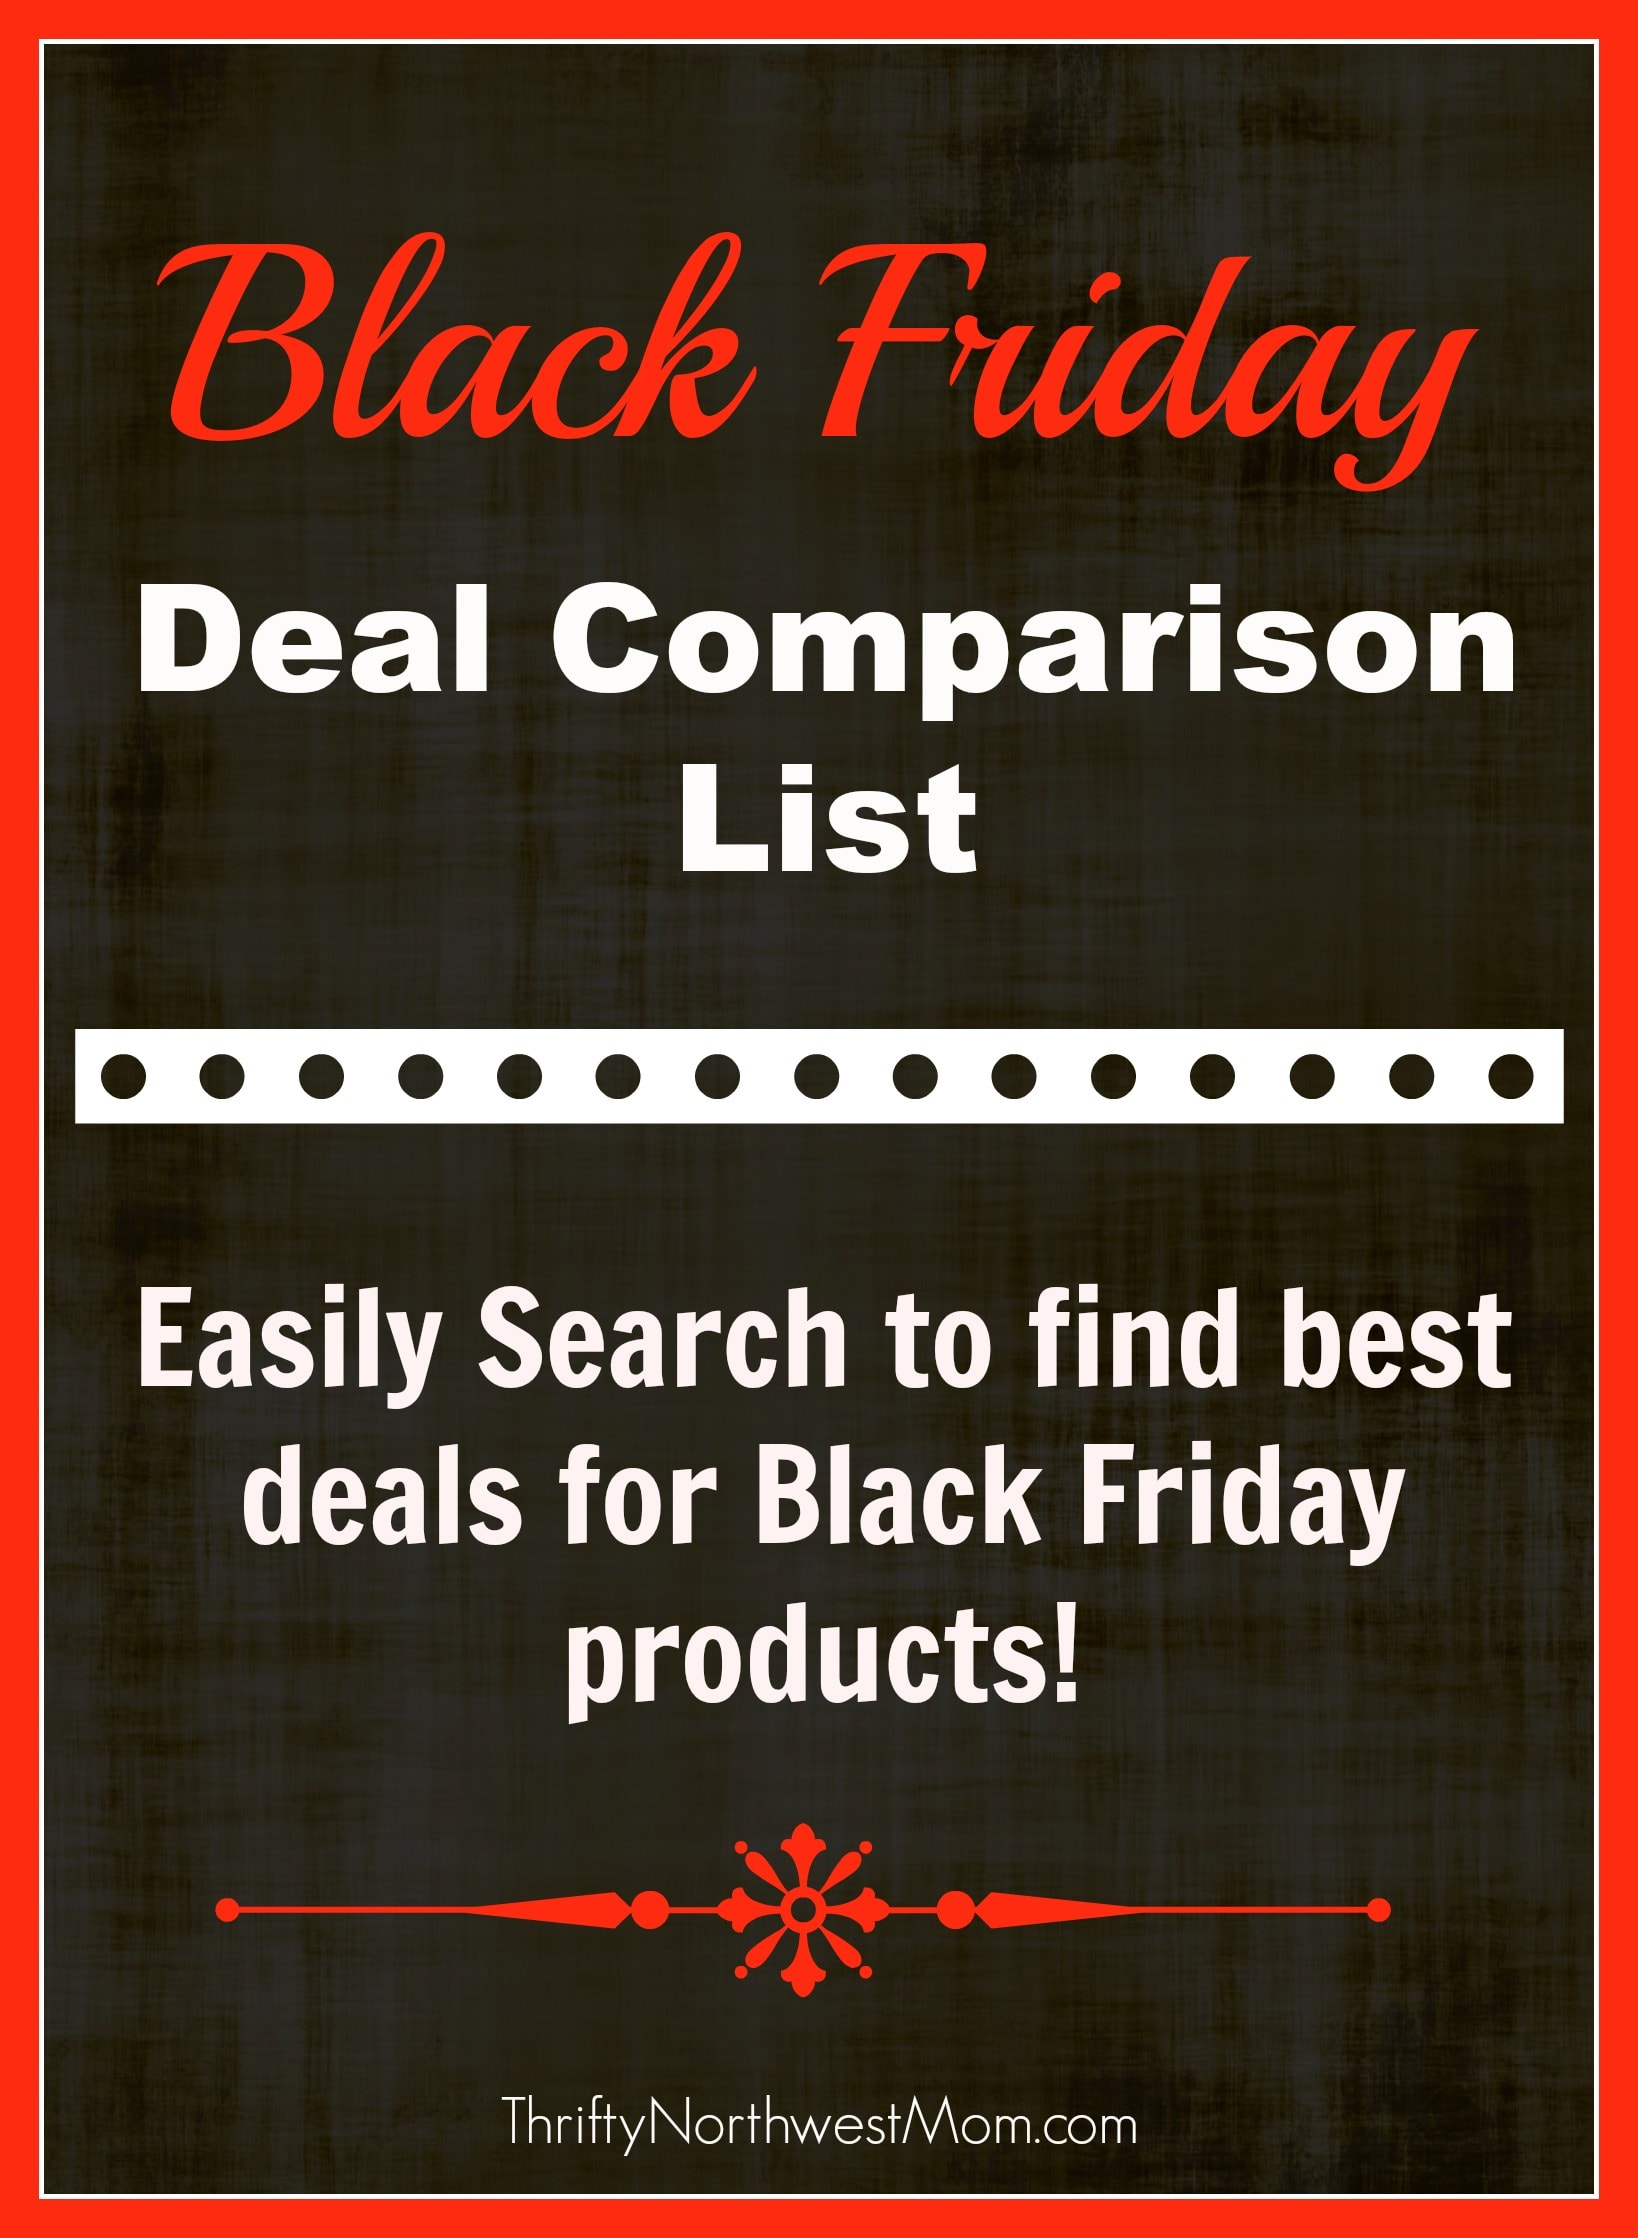 Black Friday Deal Comparison list